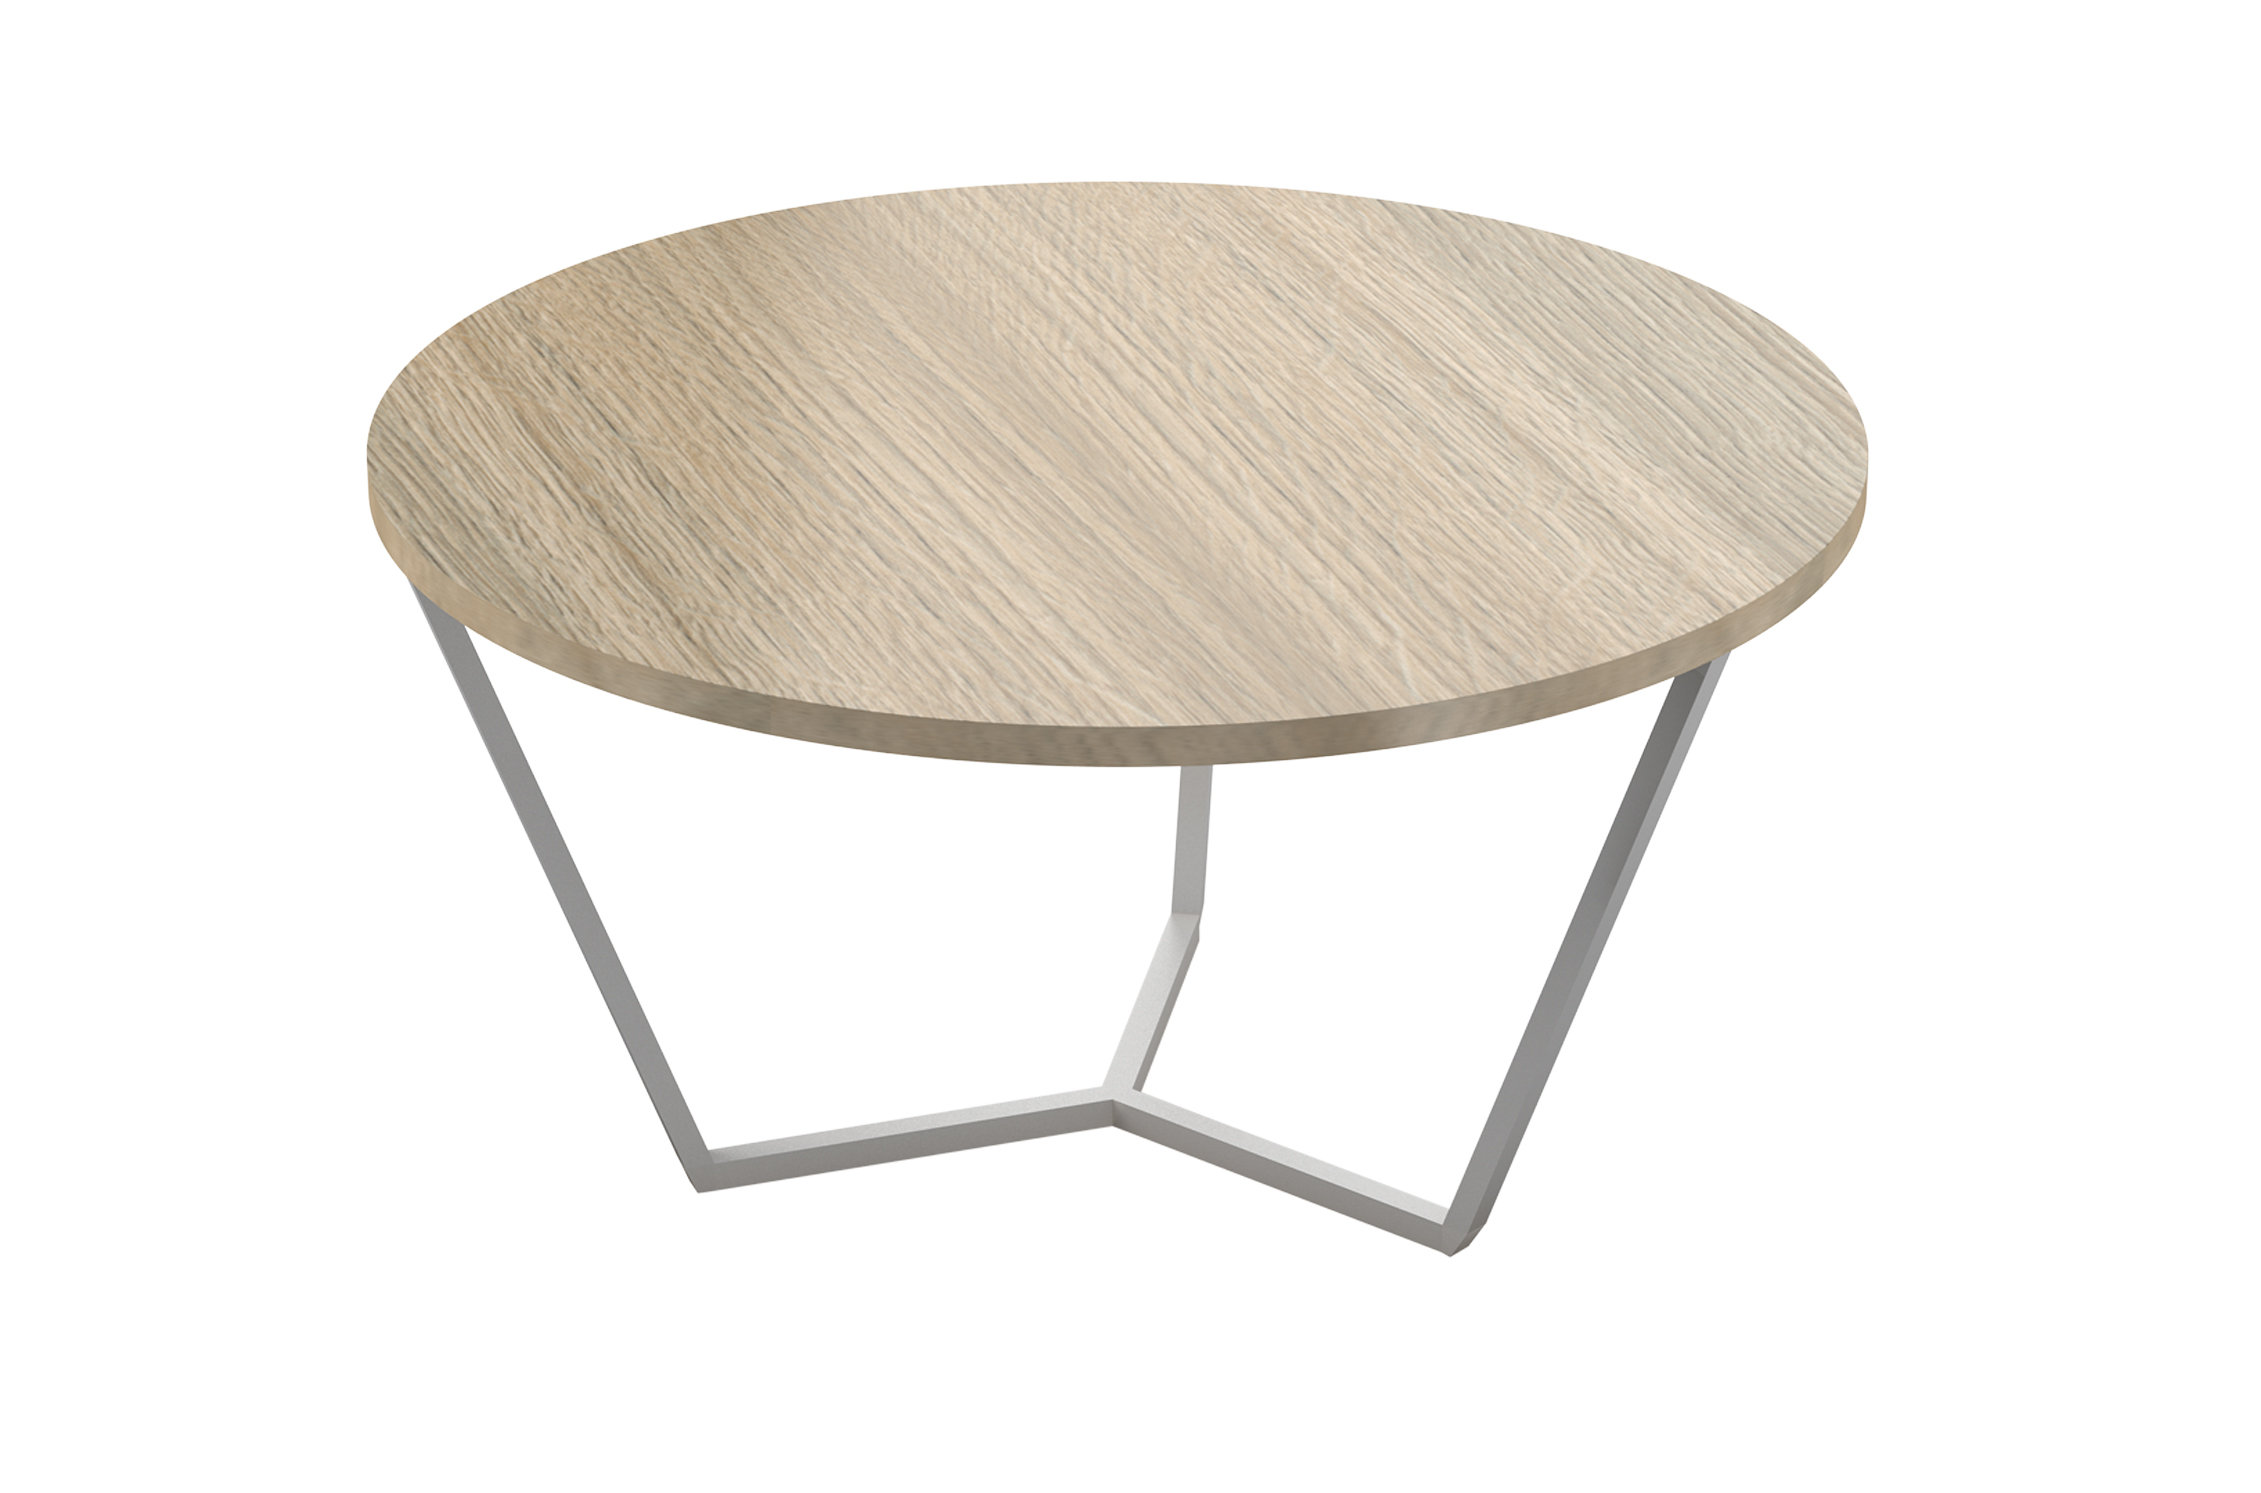 Montana Images 2019 CD031 Conference & Coffee TablesConference Table with Tapered Steel Frame